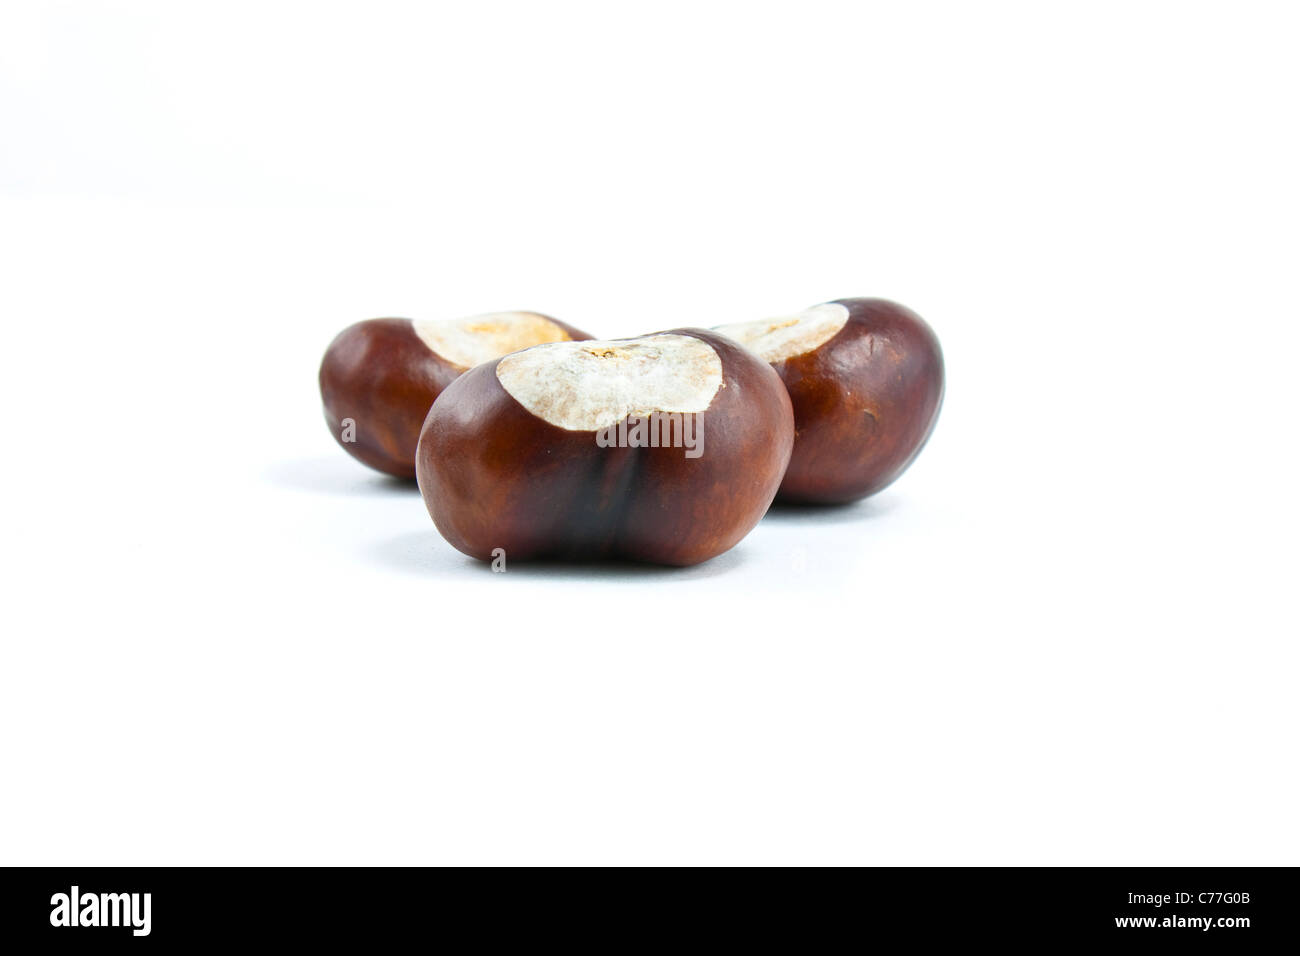 shot of 3 conkers on a white background - Stock Image